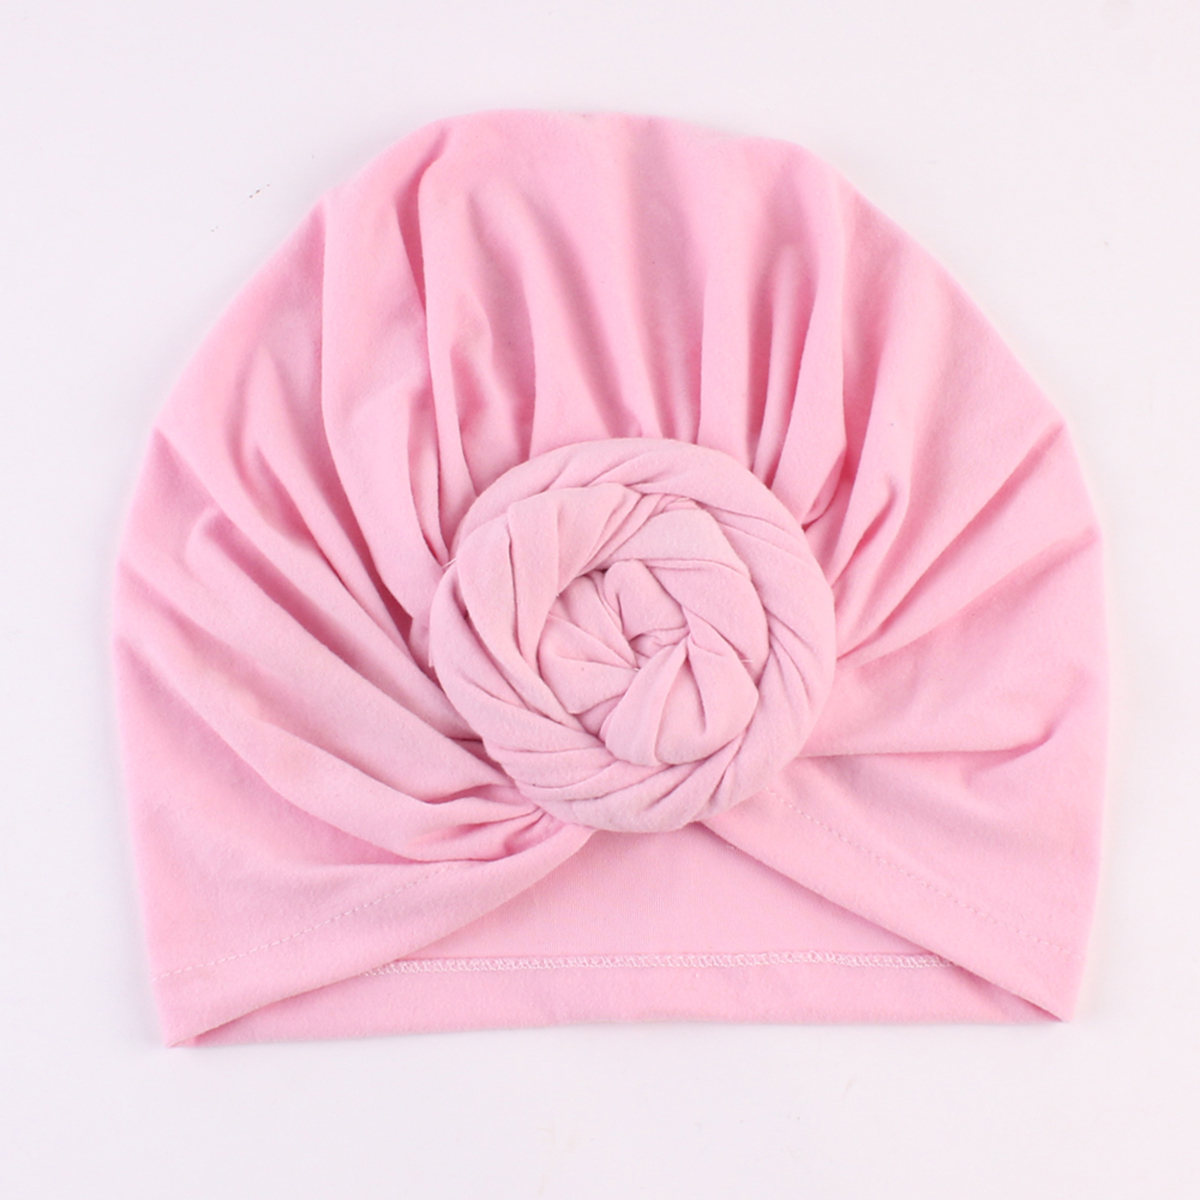 Winter Women Hat Turban Muslim Caps Head Wear Skullies Knot Wrap Caps India Hats Beanies Gorro Bonnet Bandana Hair Cover pastoralism and agriculture pennar basin india